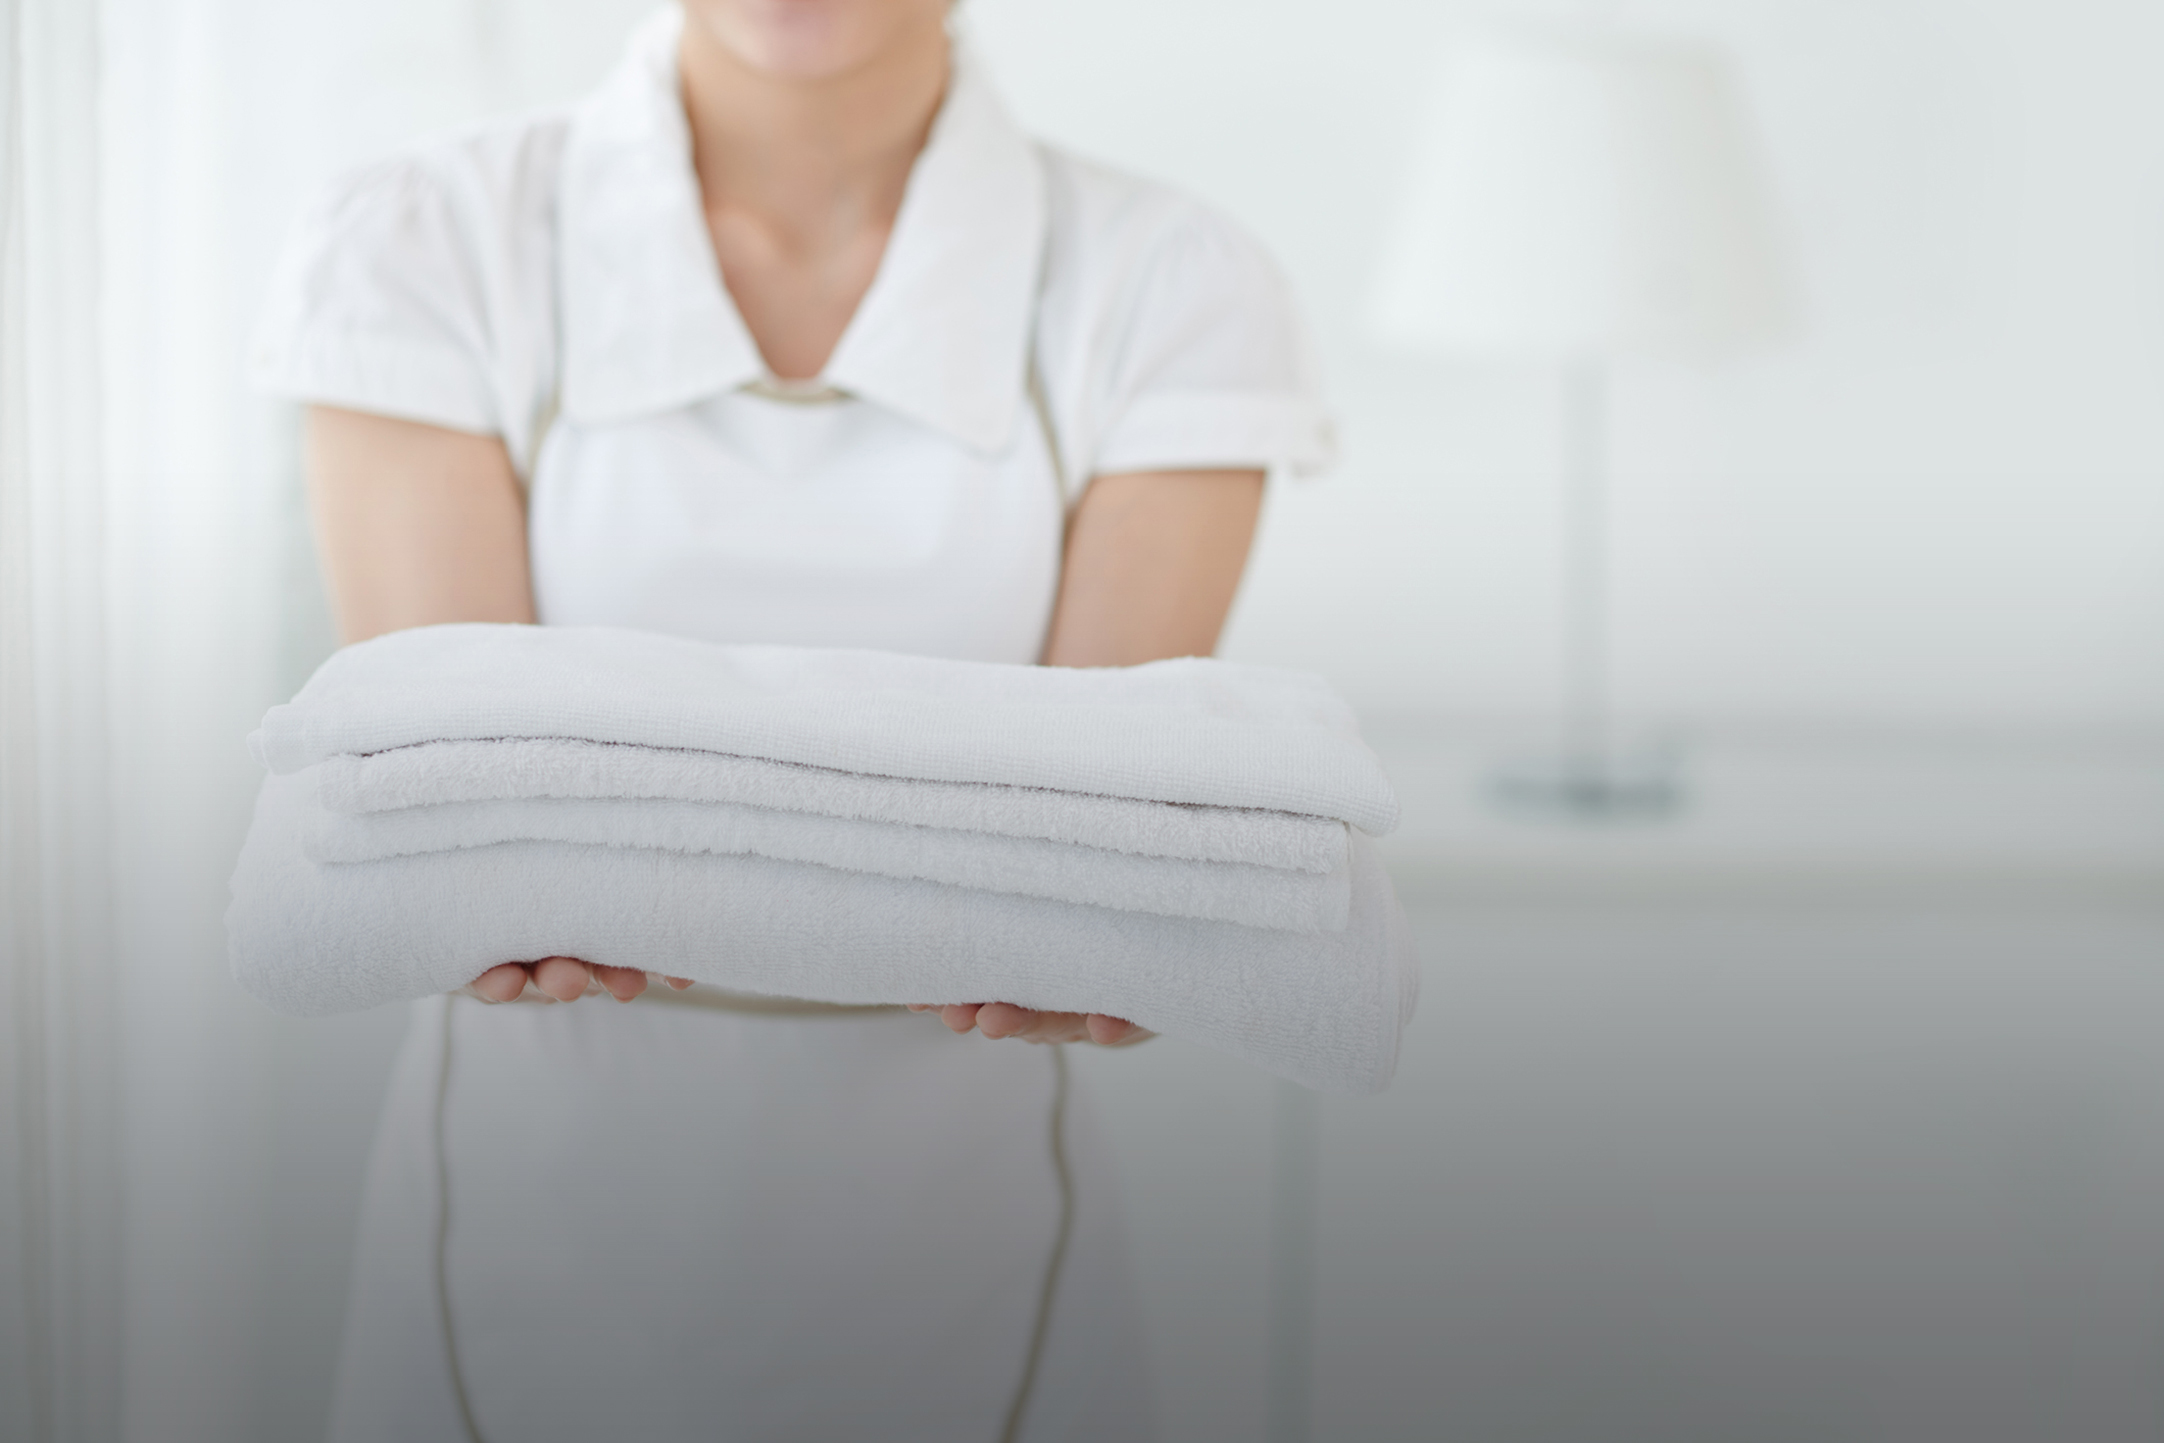 guest services holding towels